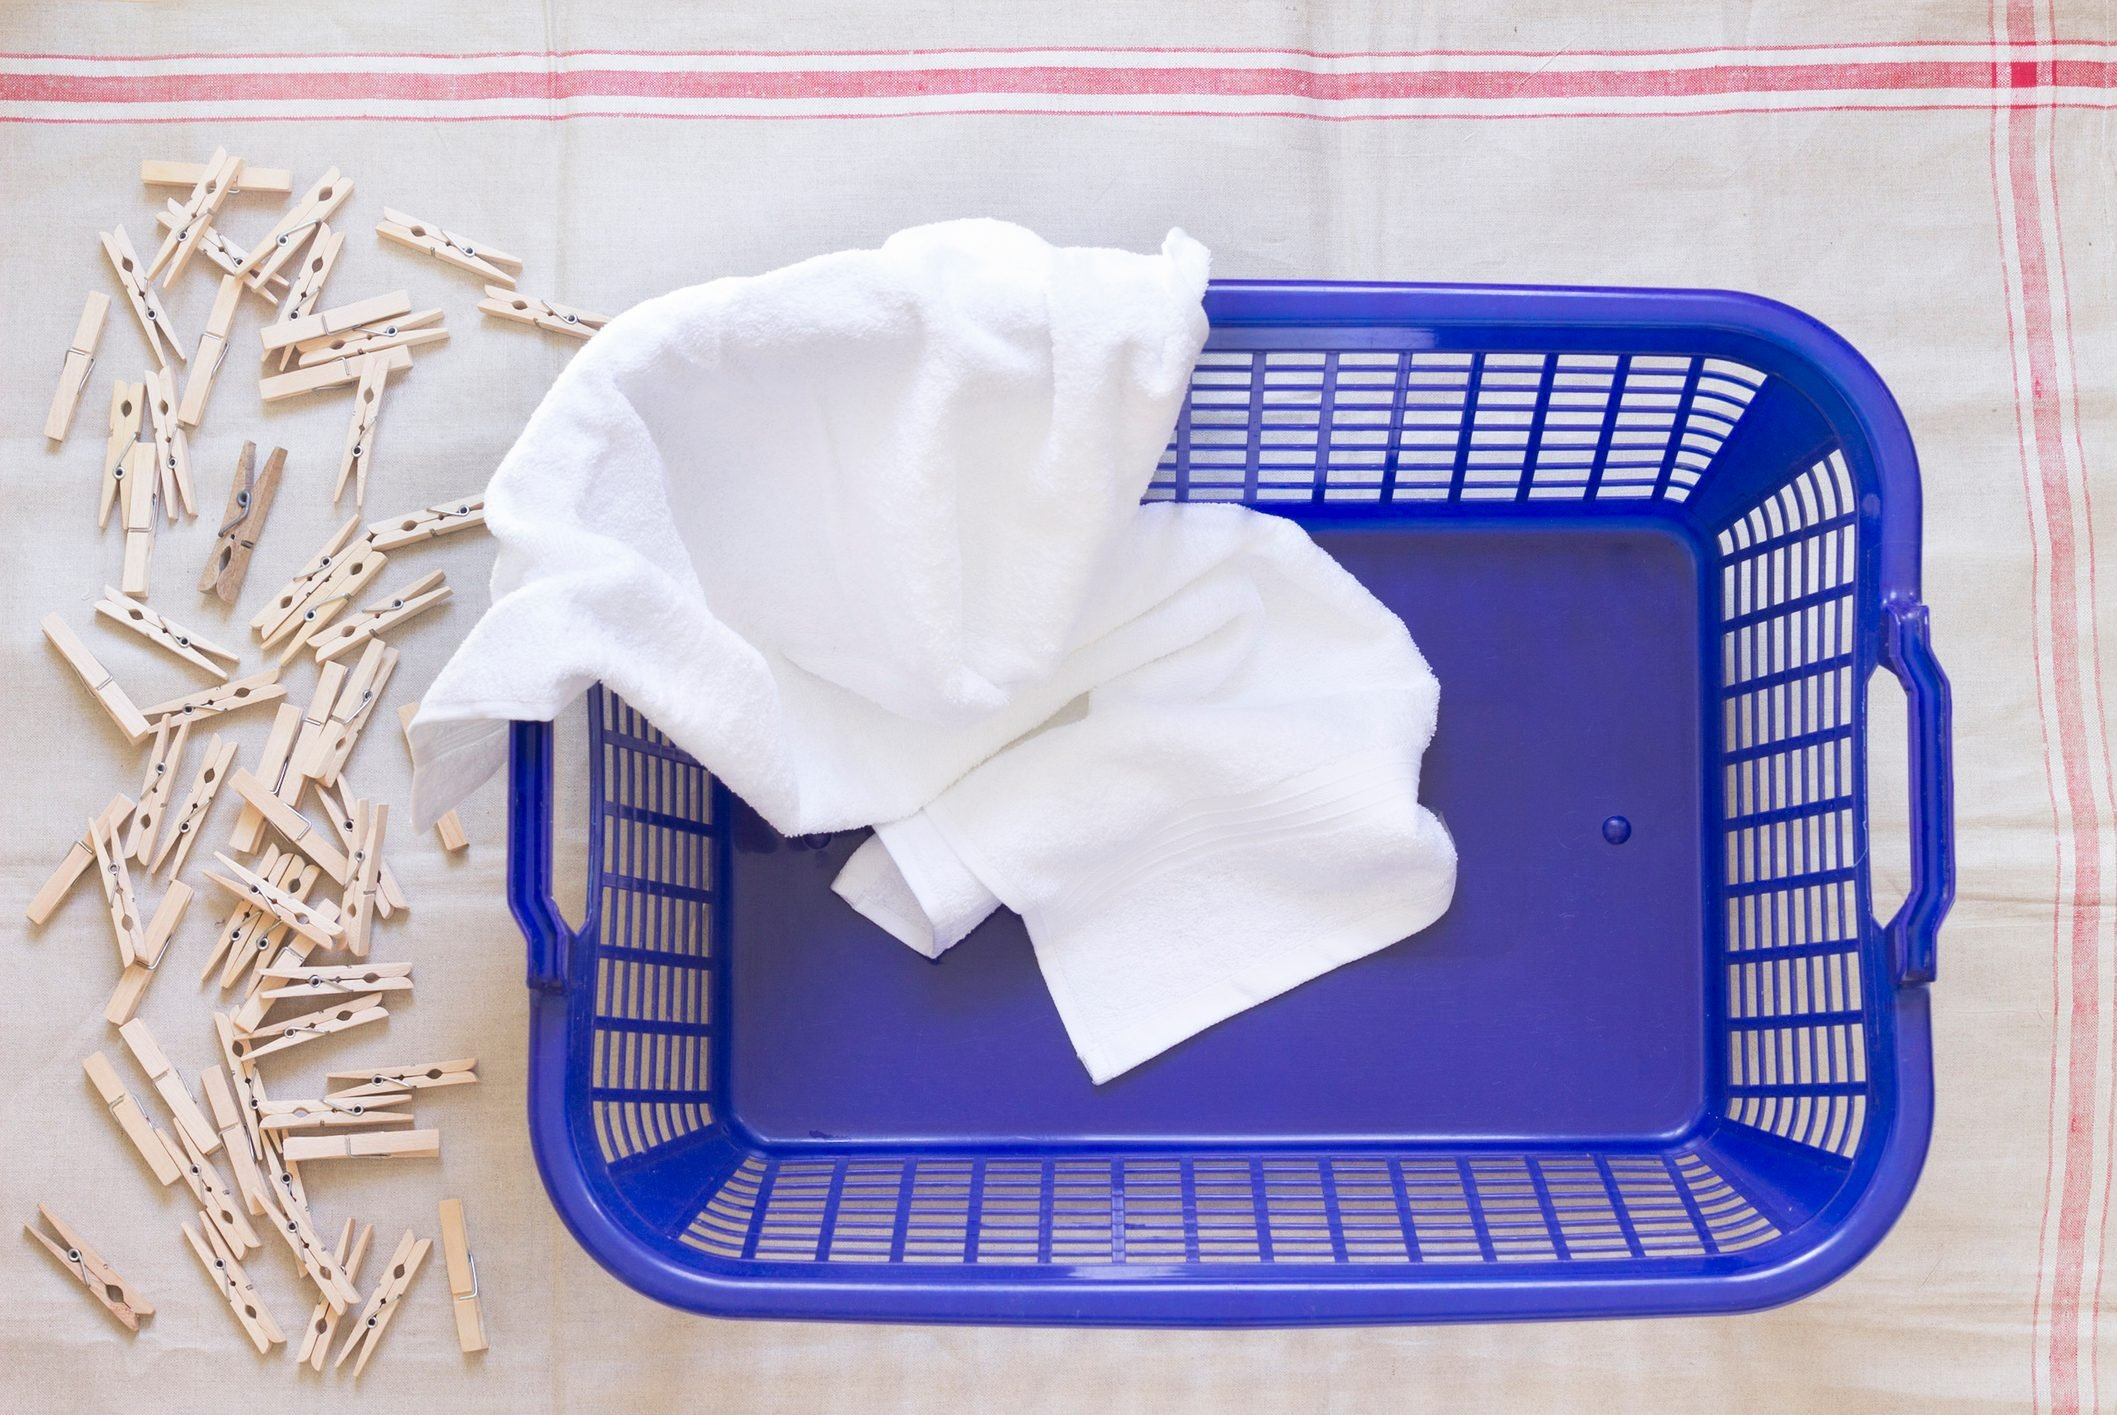 Clothes pegs, laundry basket and towel on cloth